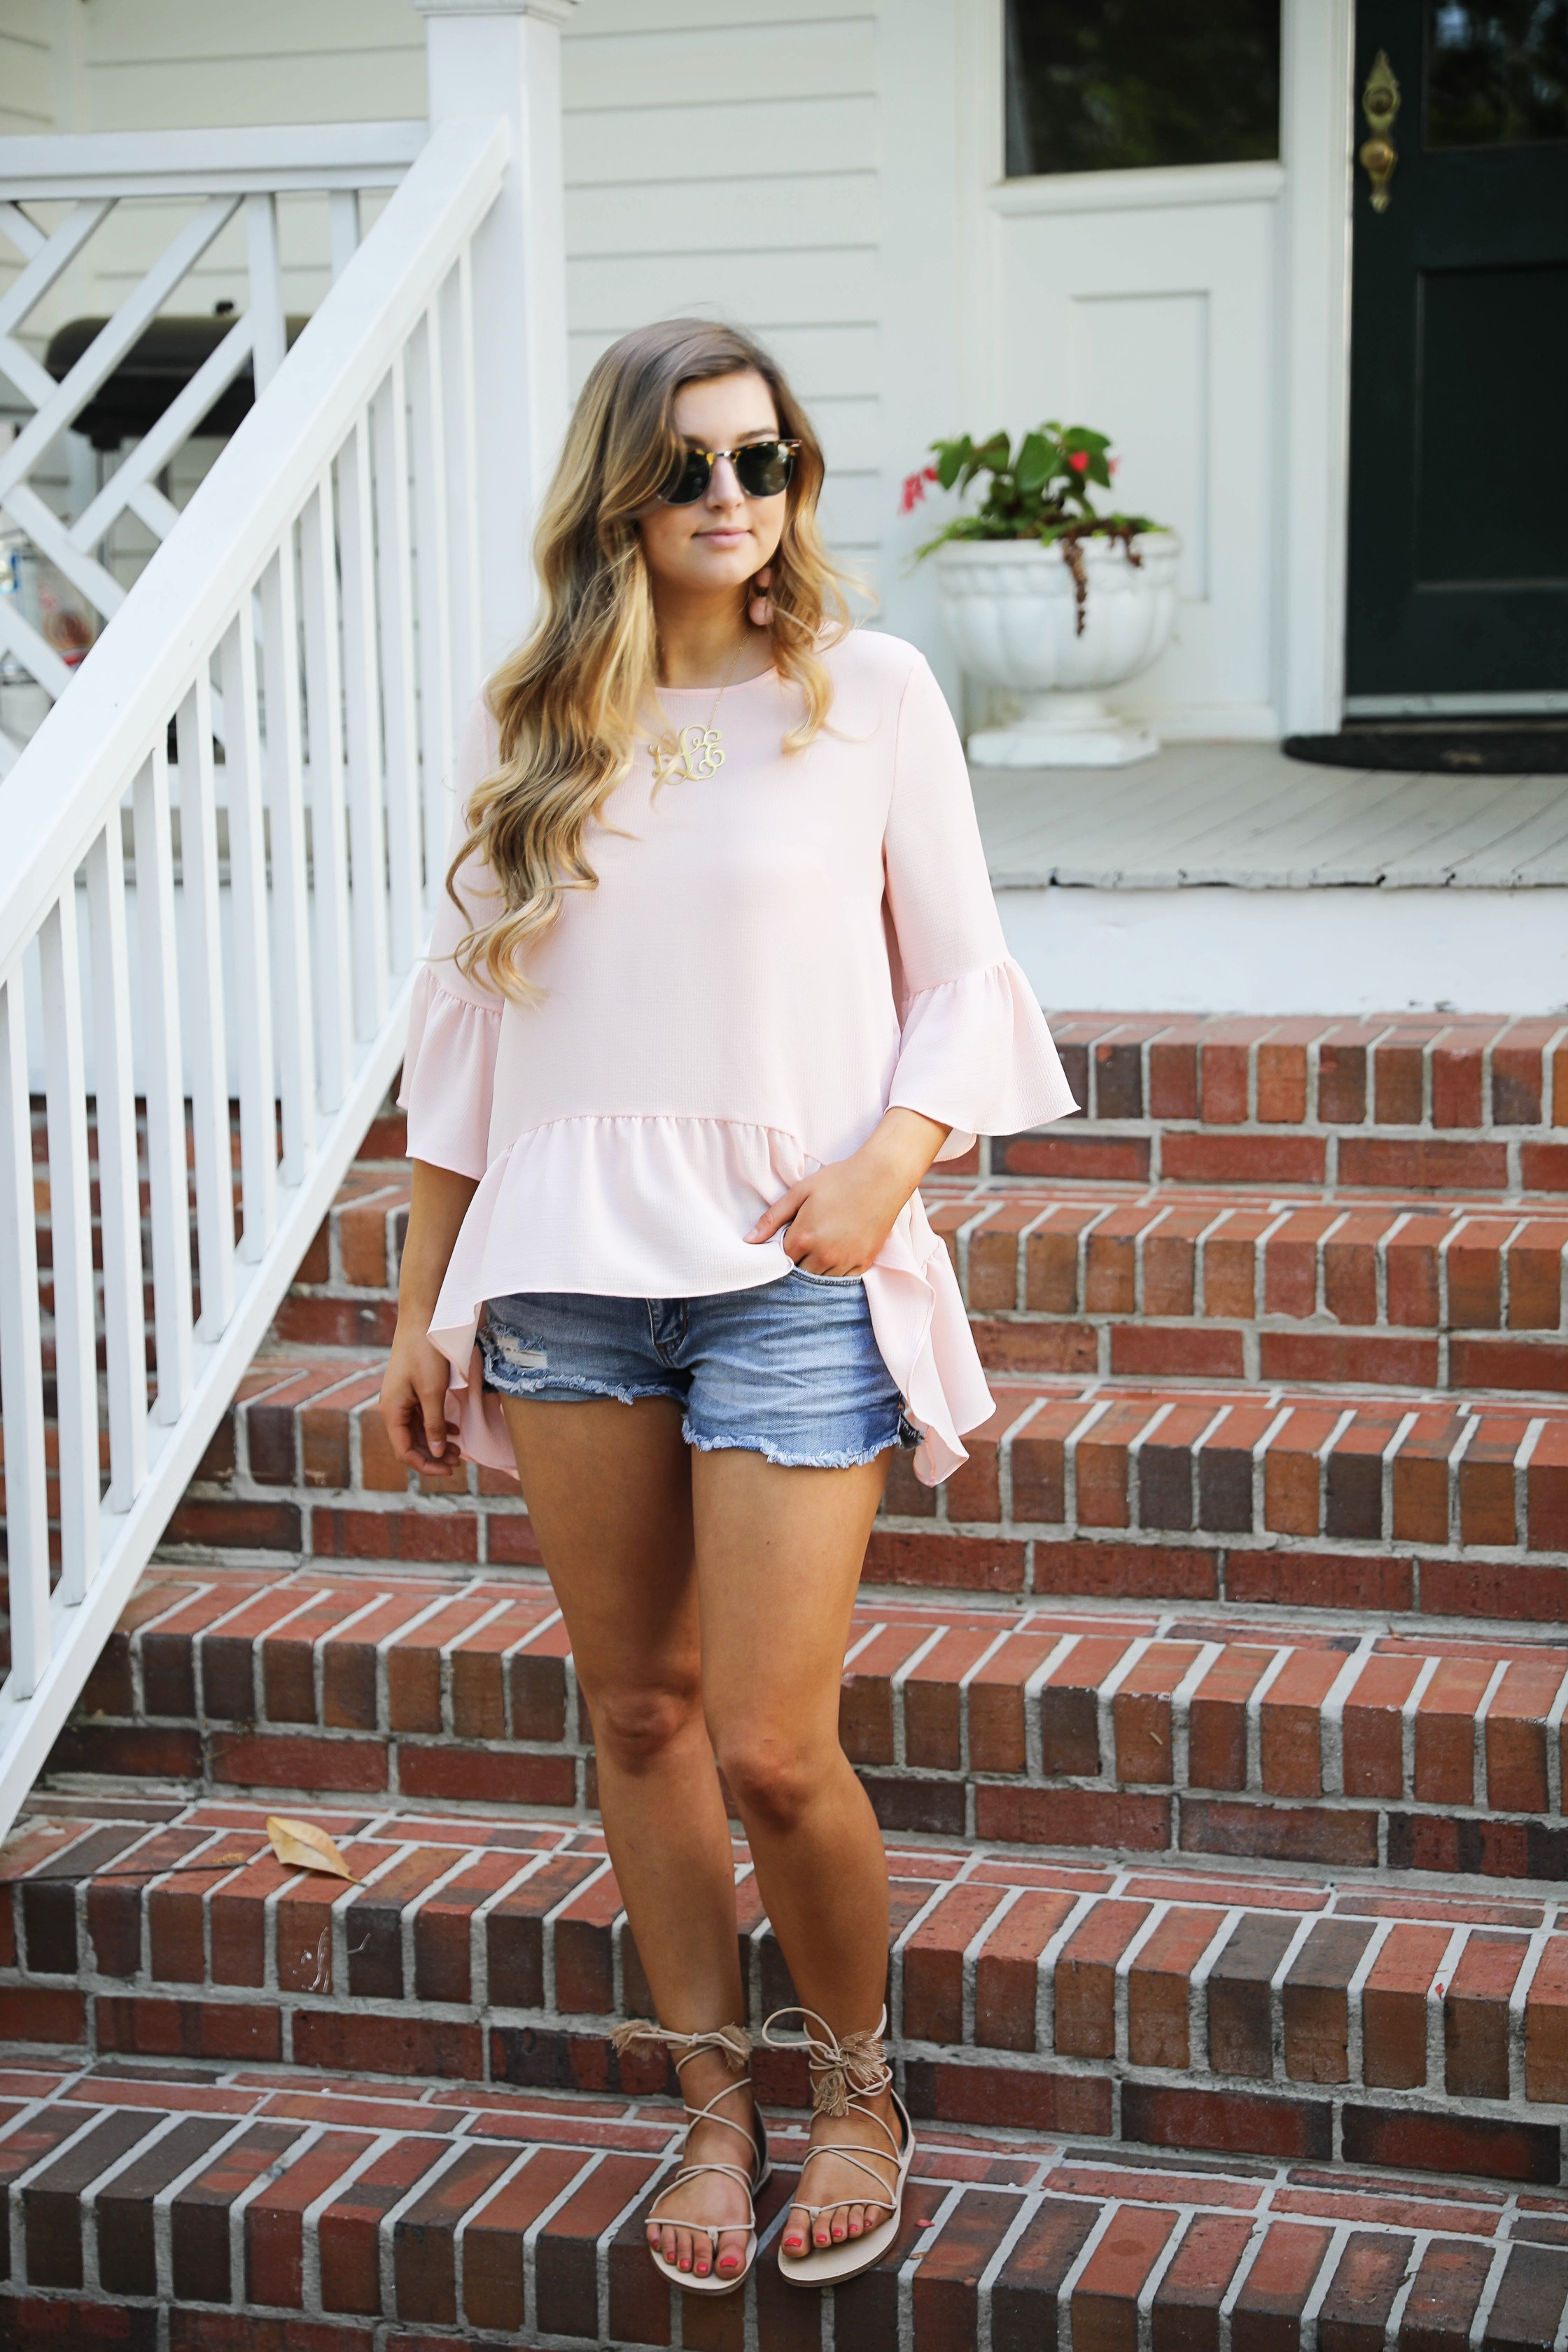 Flowy pink peplum top perfect for a southern outfit! Georgia porch outfit from Nordstrom. By fashion blogger Lauren Lindmark on dailydoseofcharm.com daily dose of charm